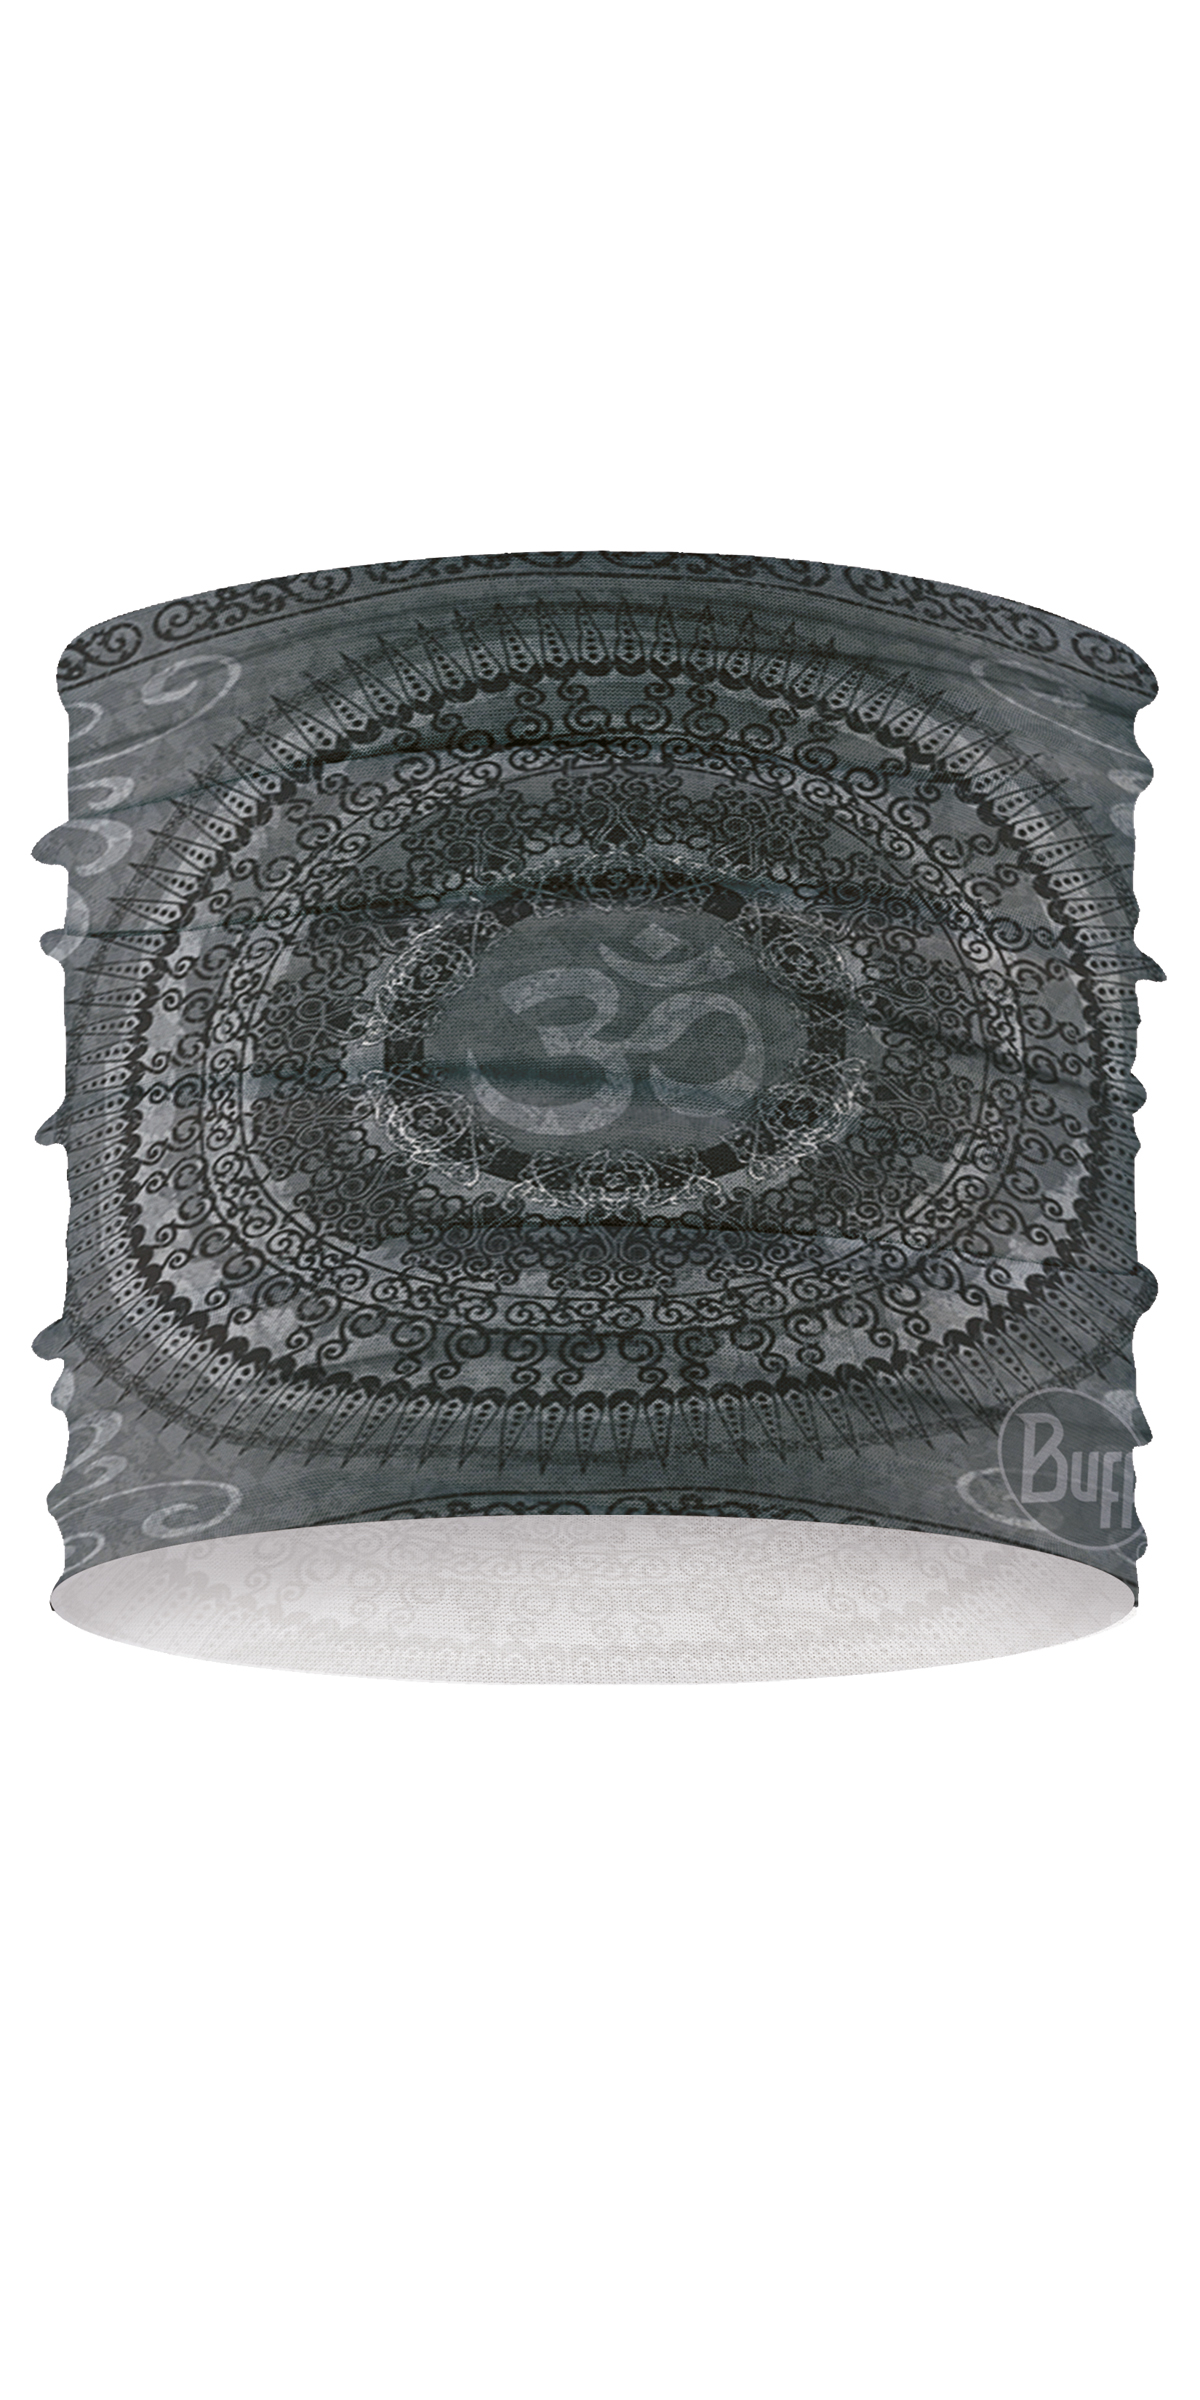 CoolNet UV+ Multifunctional Headband - Mandala